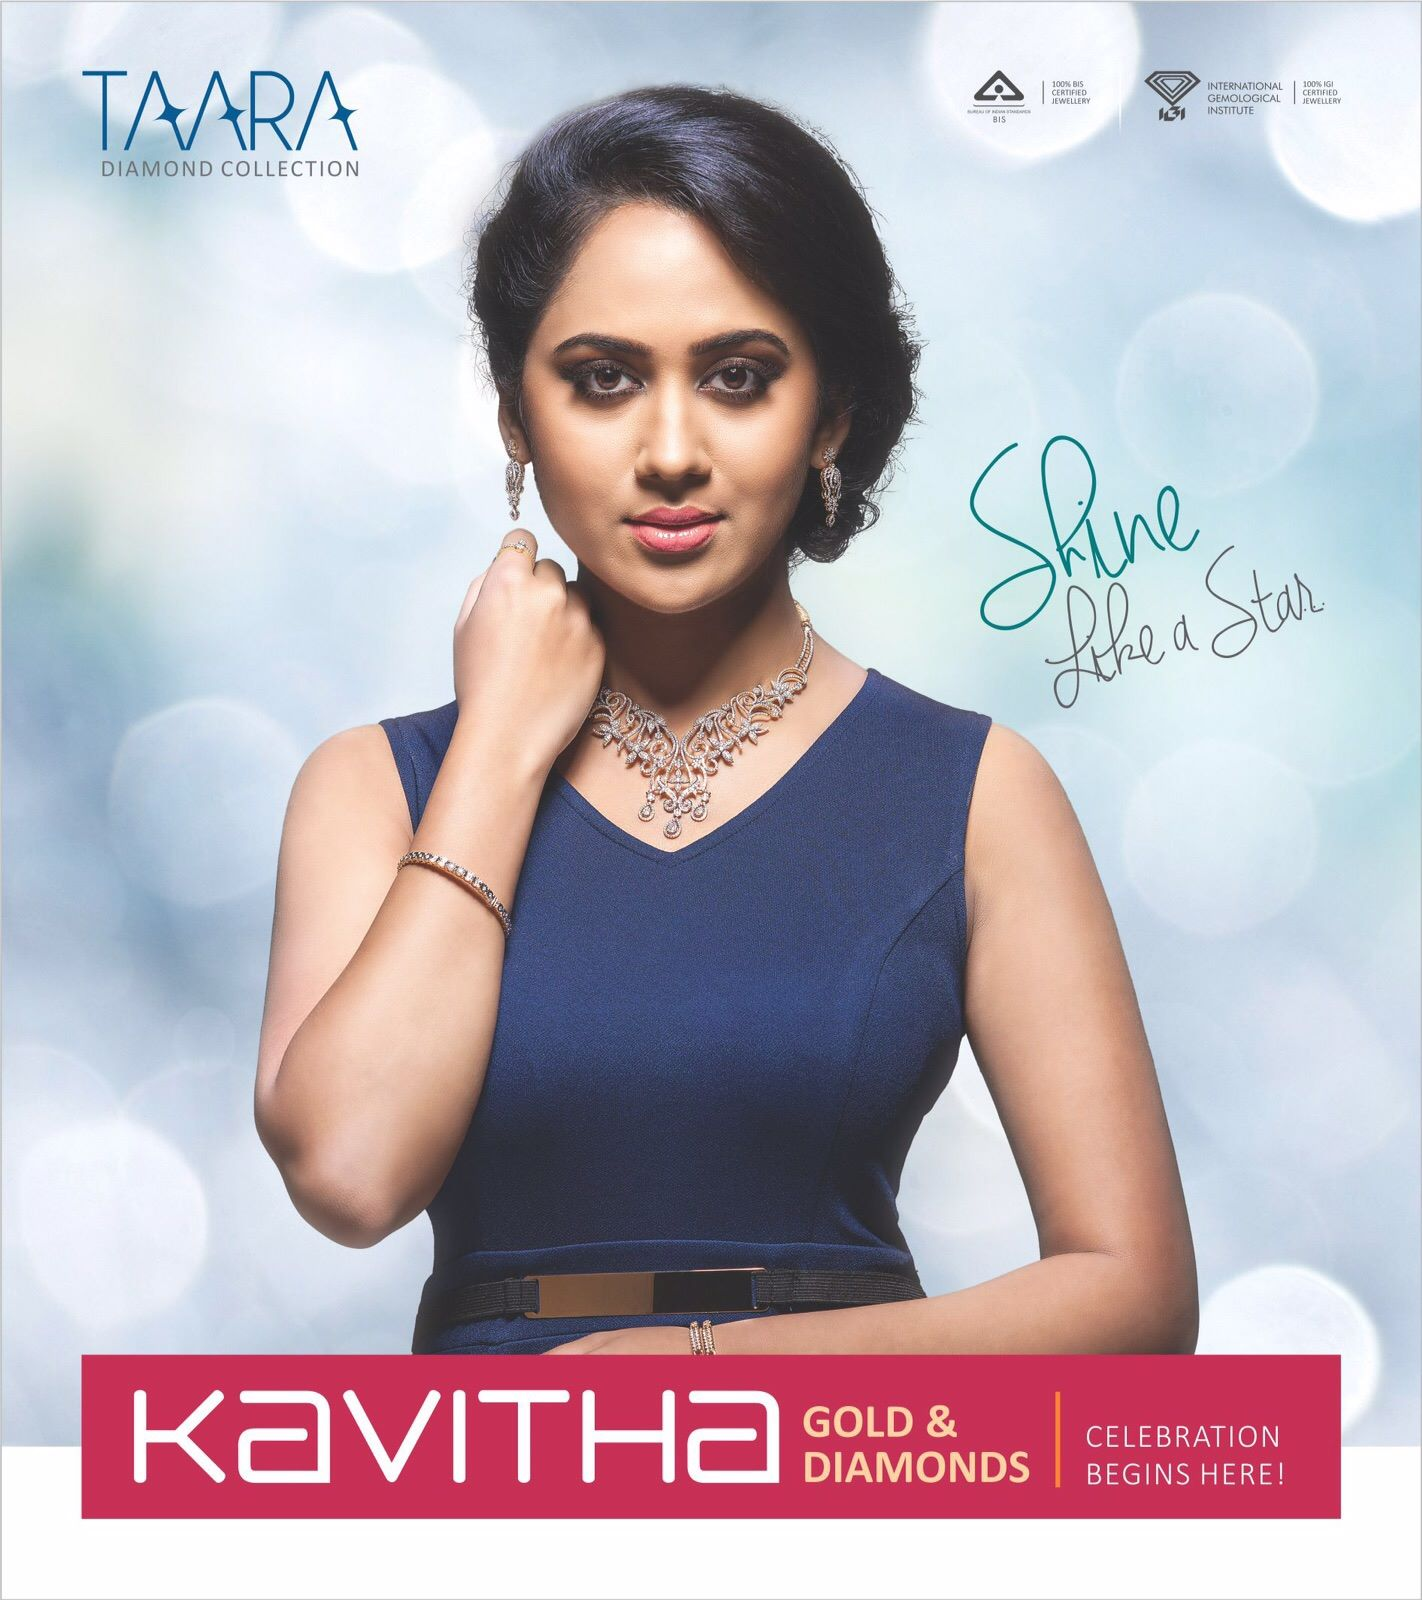 Kavitha gold and diamonds ottapalam miya advertisements for Hm diwan jewellers